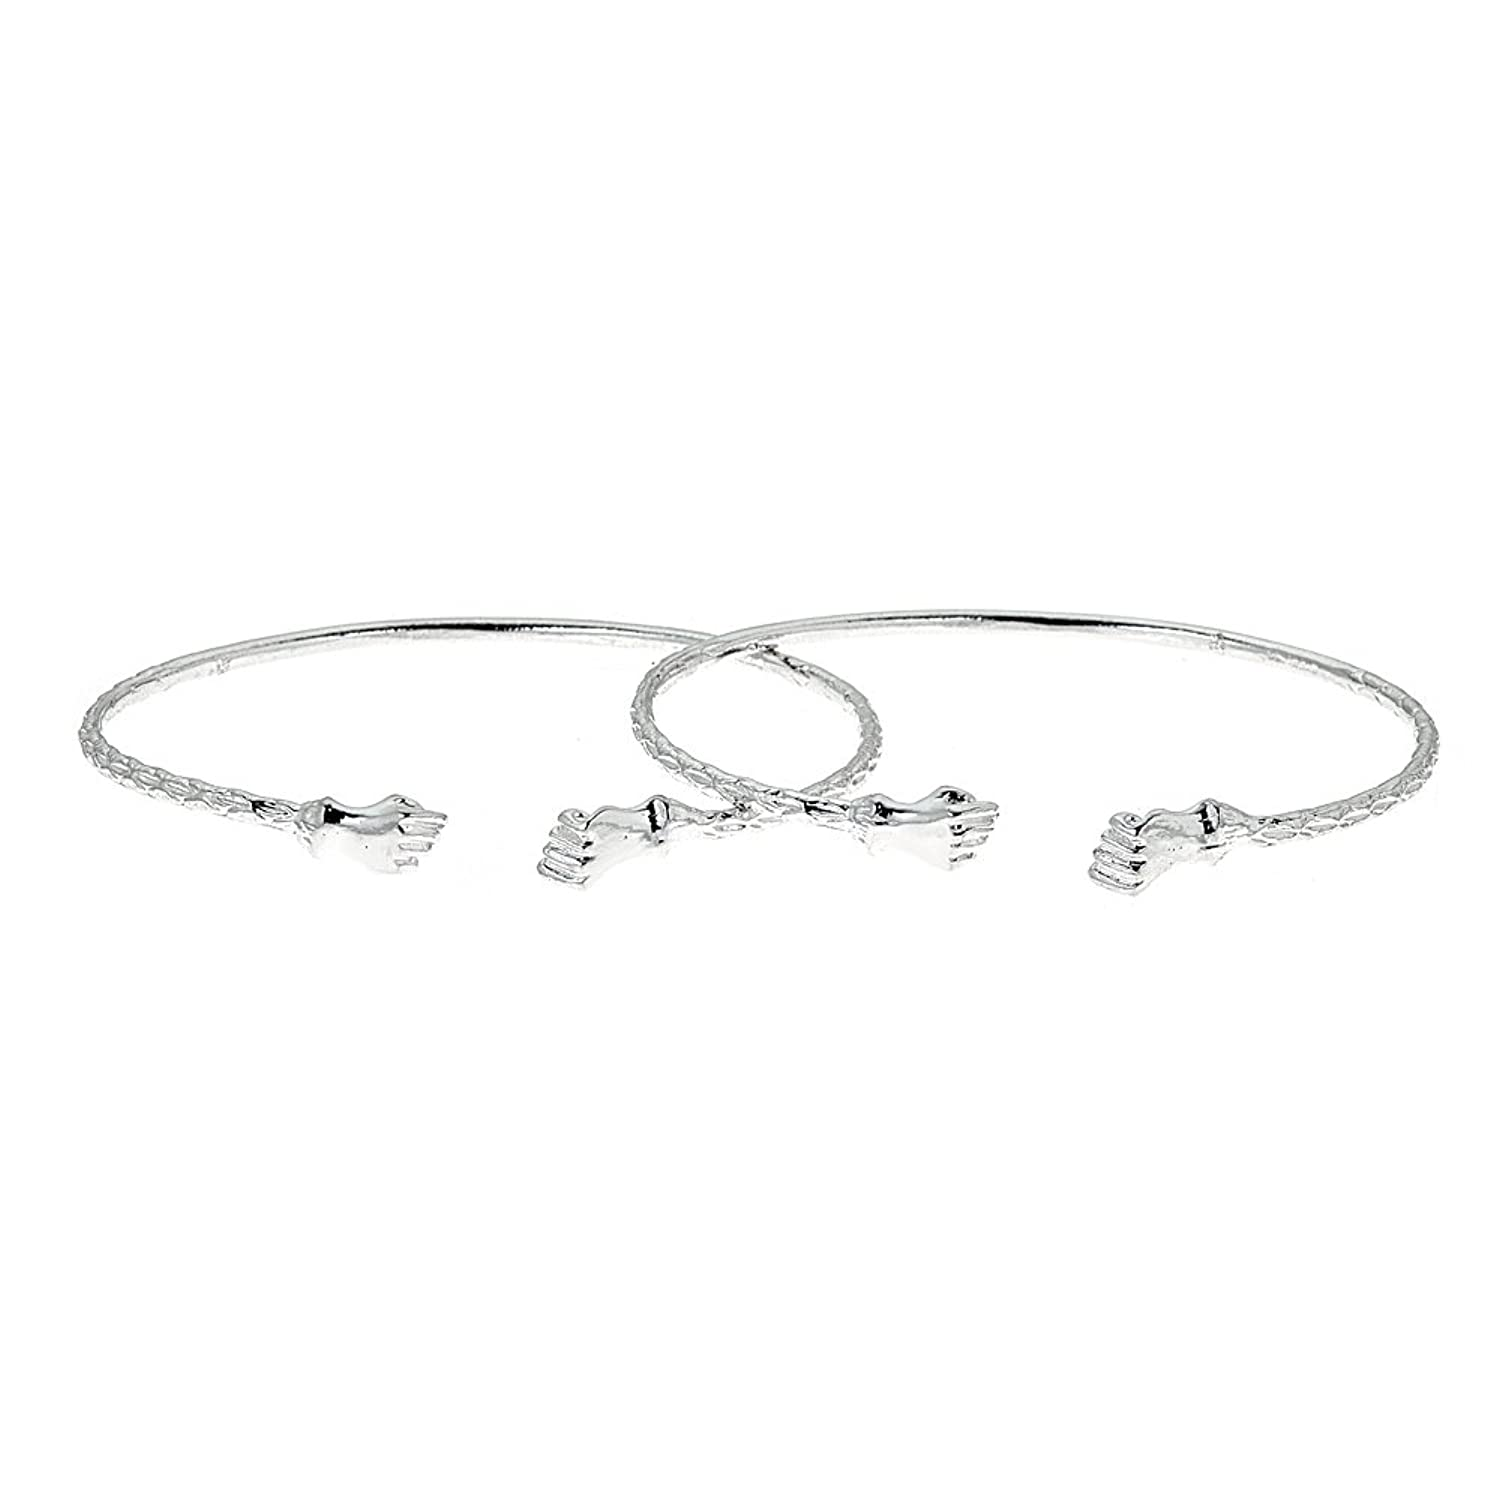 Solid .925 Sterling Silver Small Fist Bangles (Made in USA)